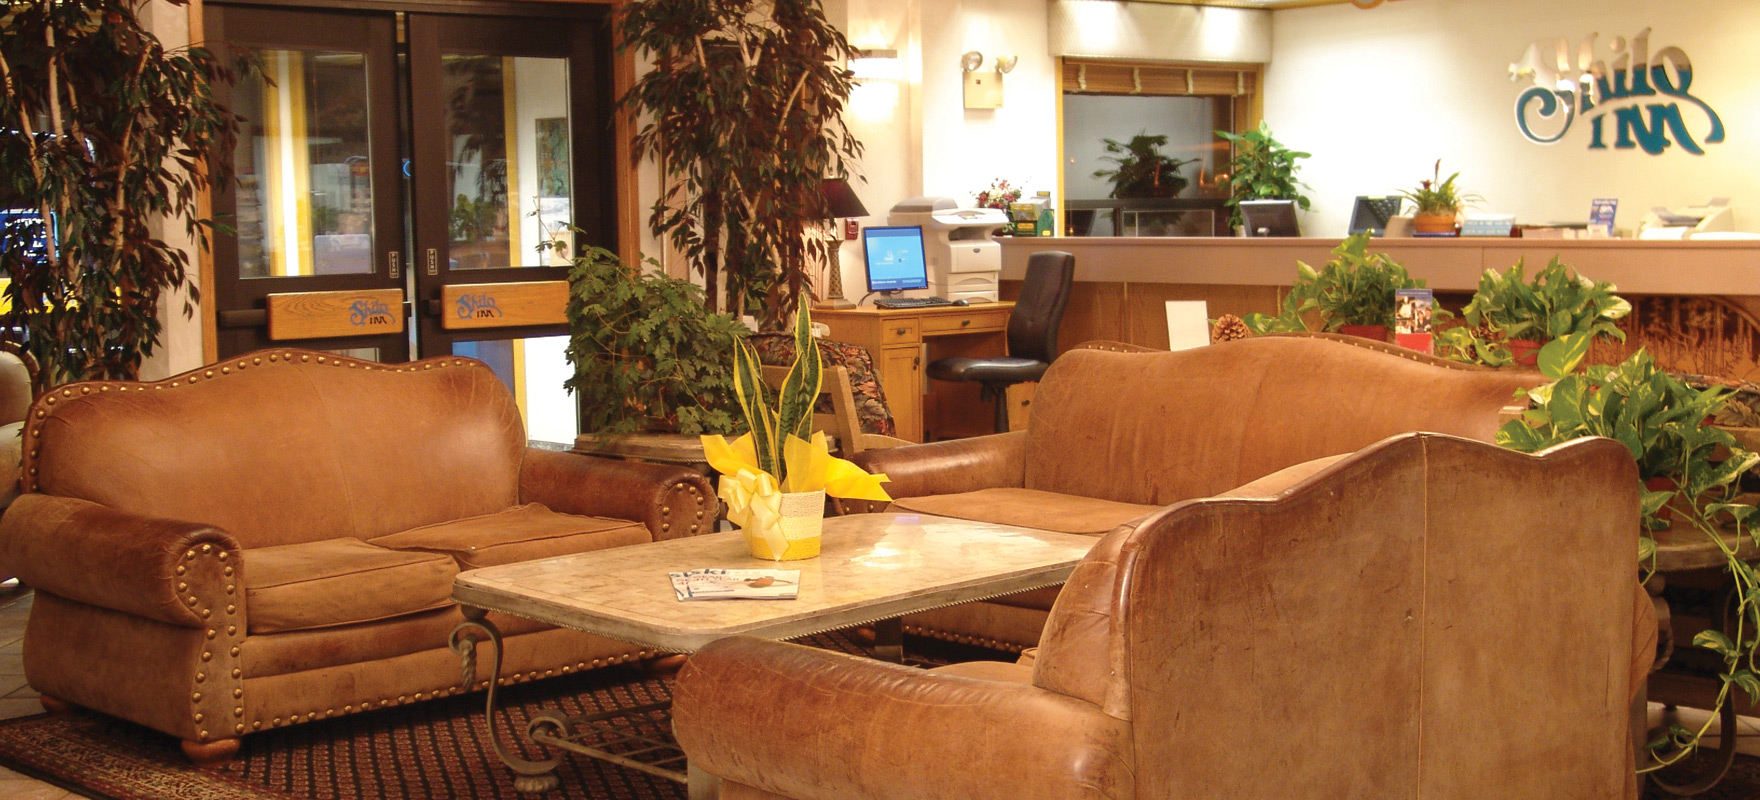 Shilo Inns Suites Hotels Mammoth Lakes California